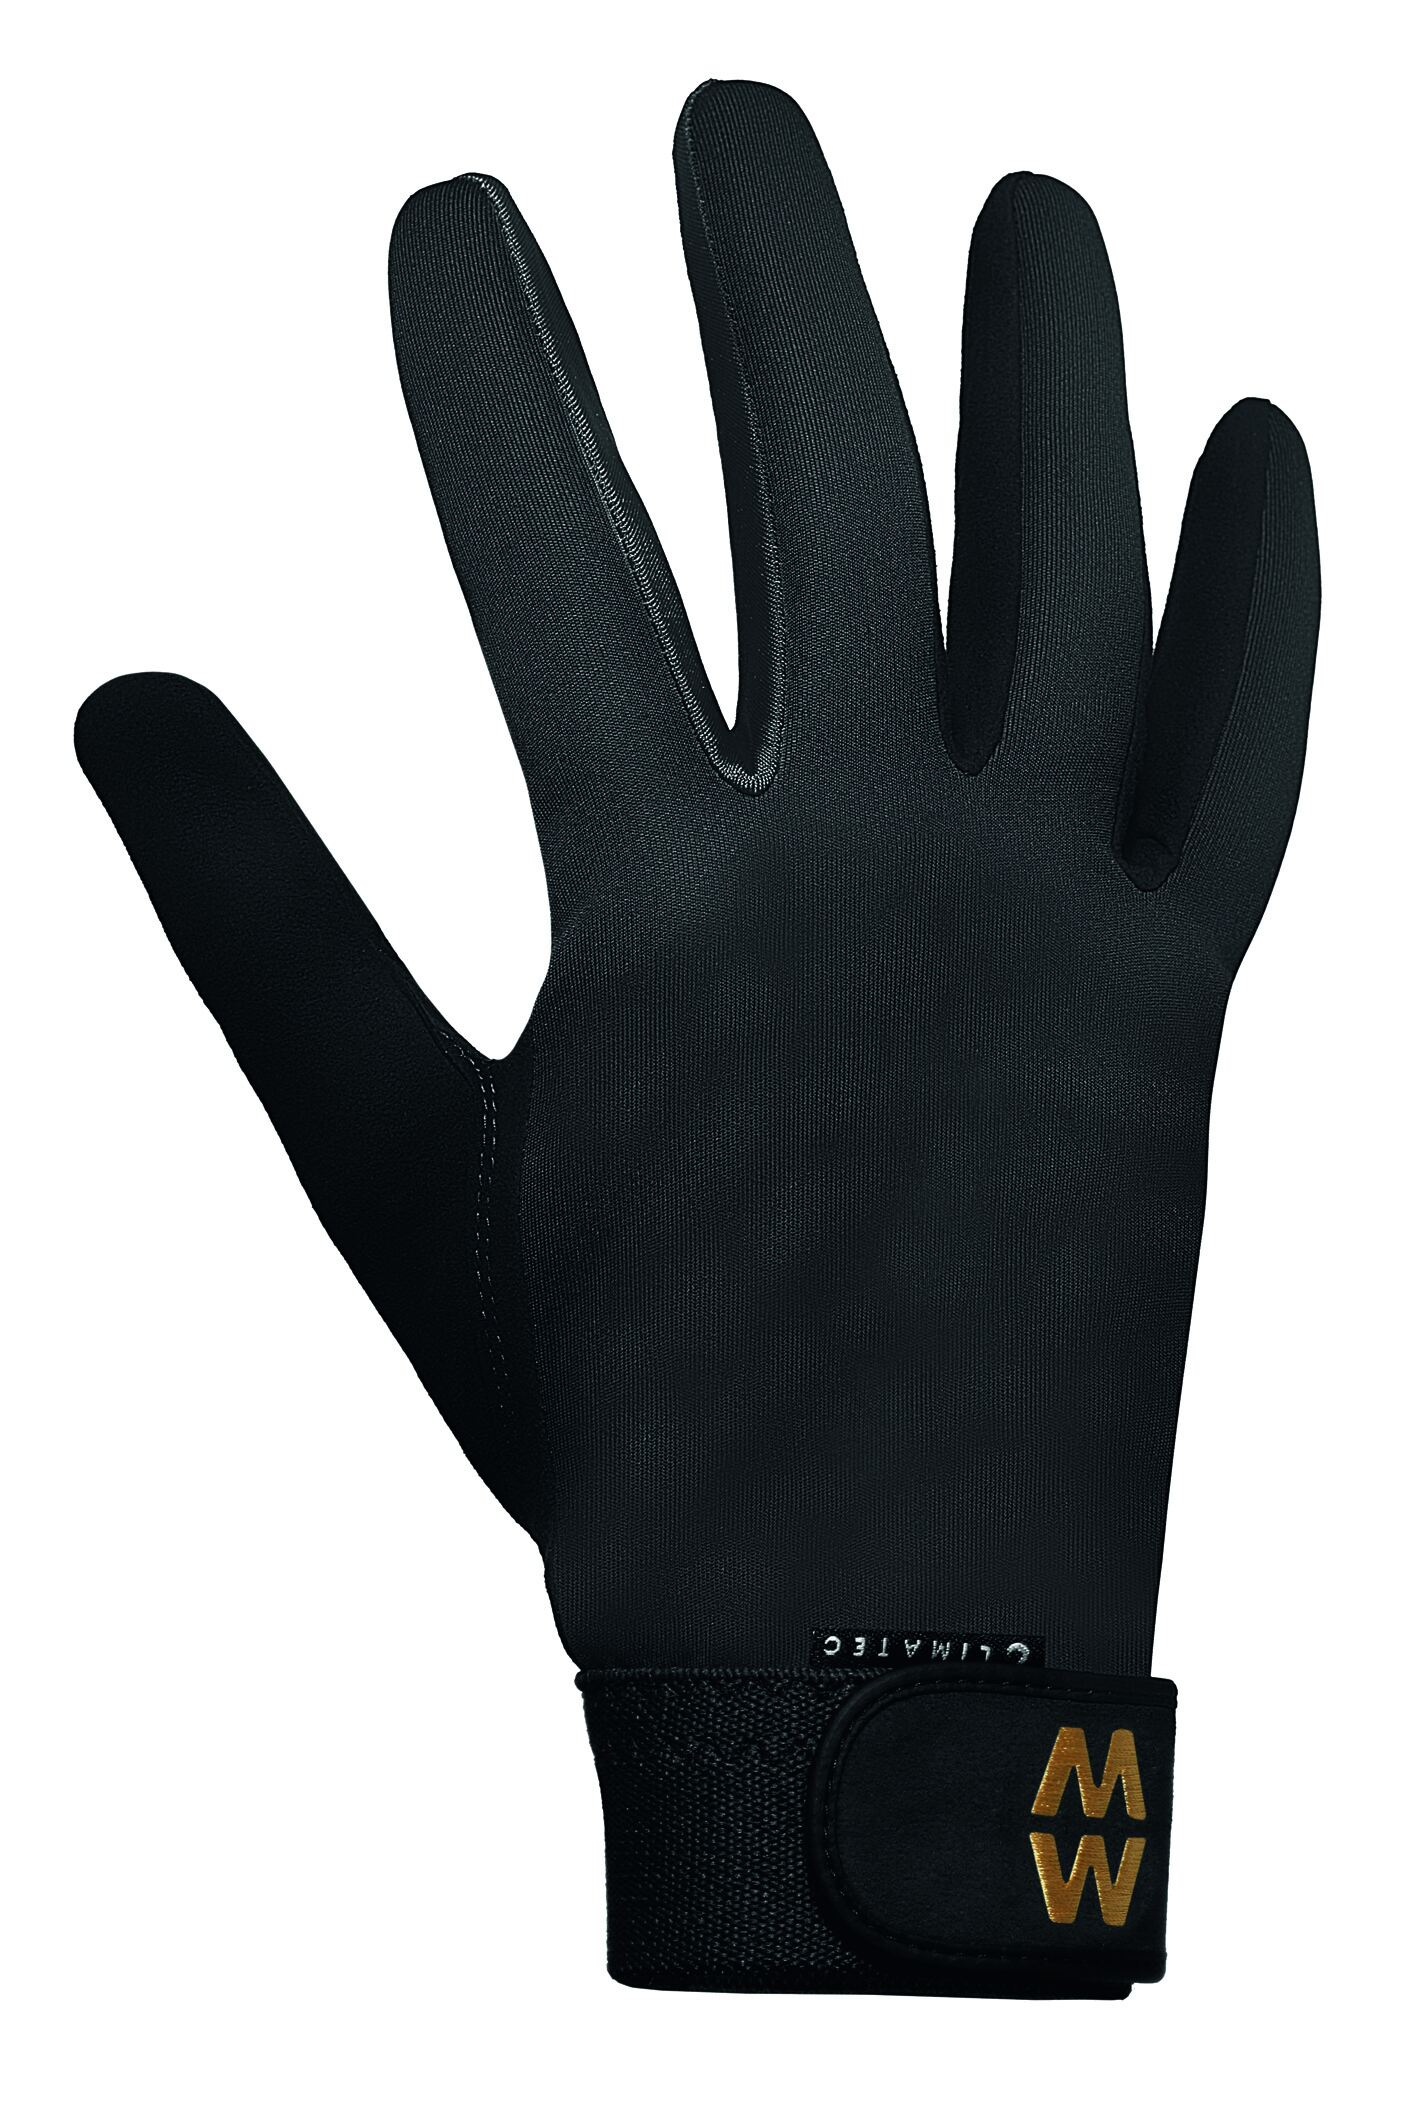 Image of 1 Pair Black MacWet Long Climatec Sports Gloves Unisex 12 Unisex - Macwet